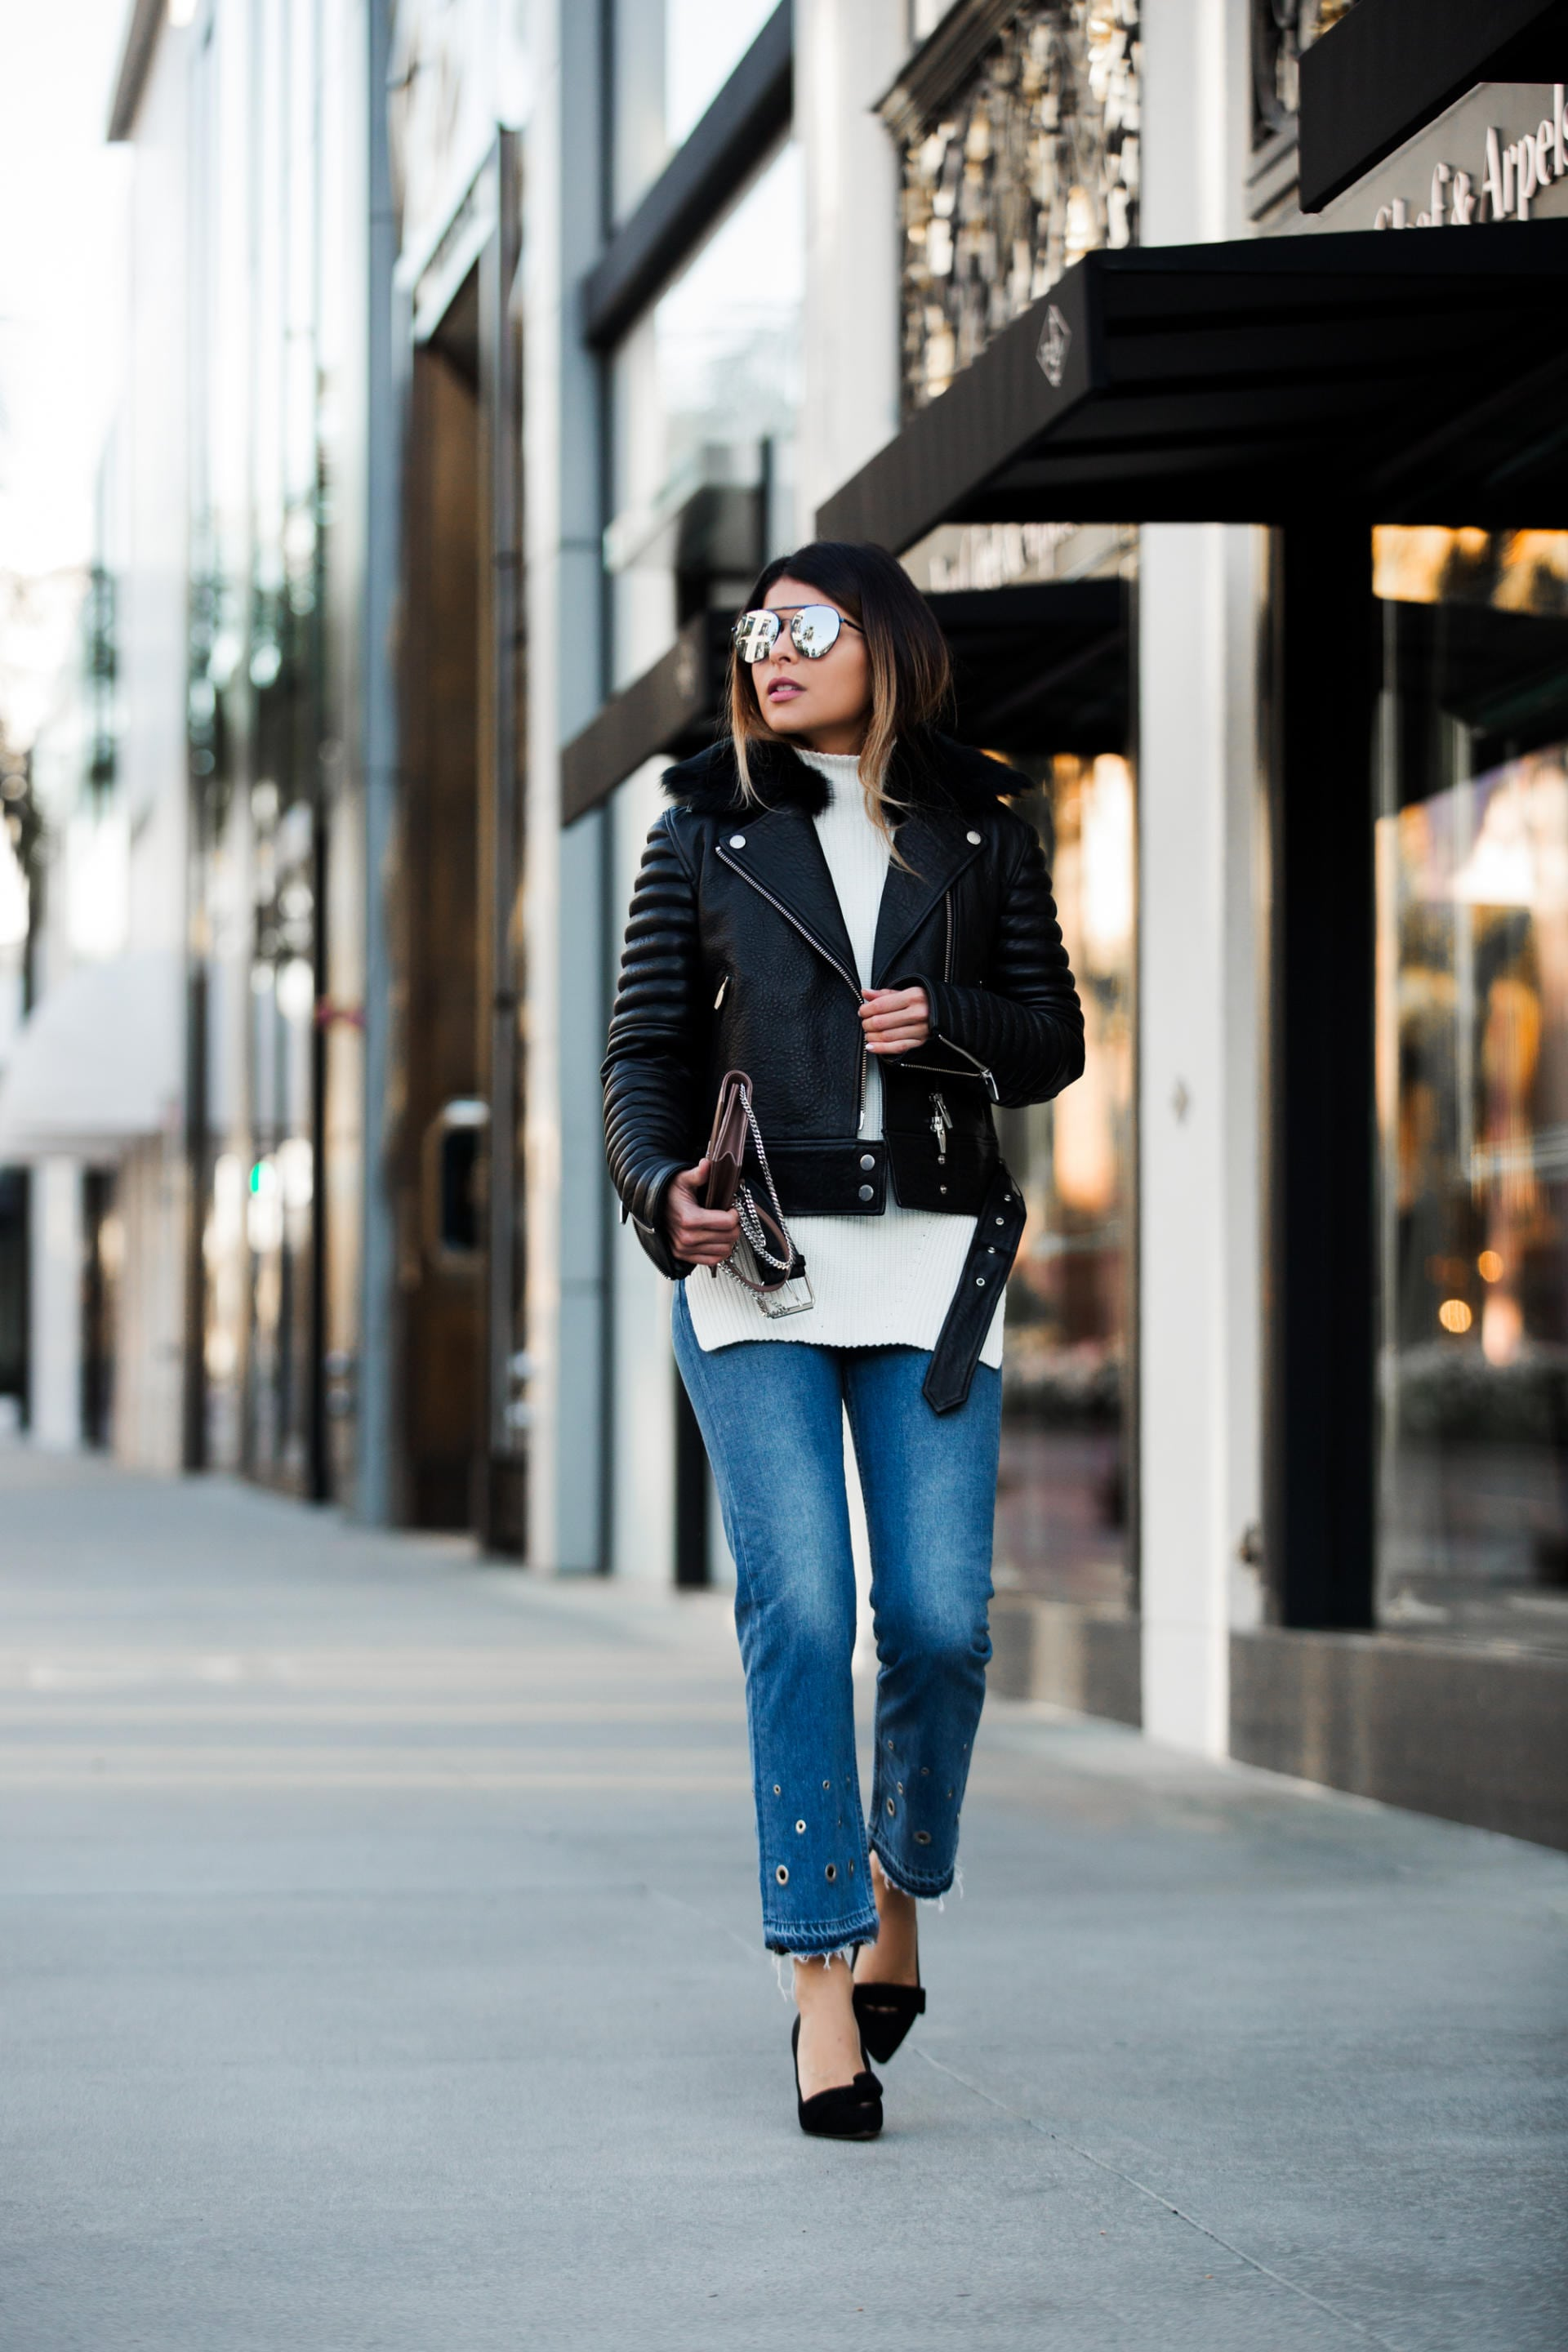 Top 5 Leather Jackets for Winter - The Girl from Panama